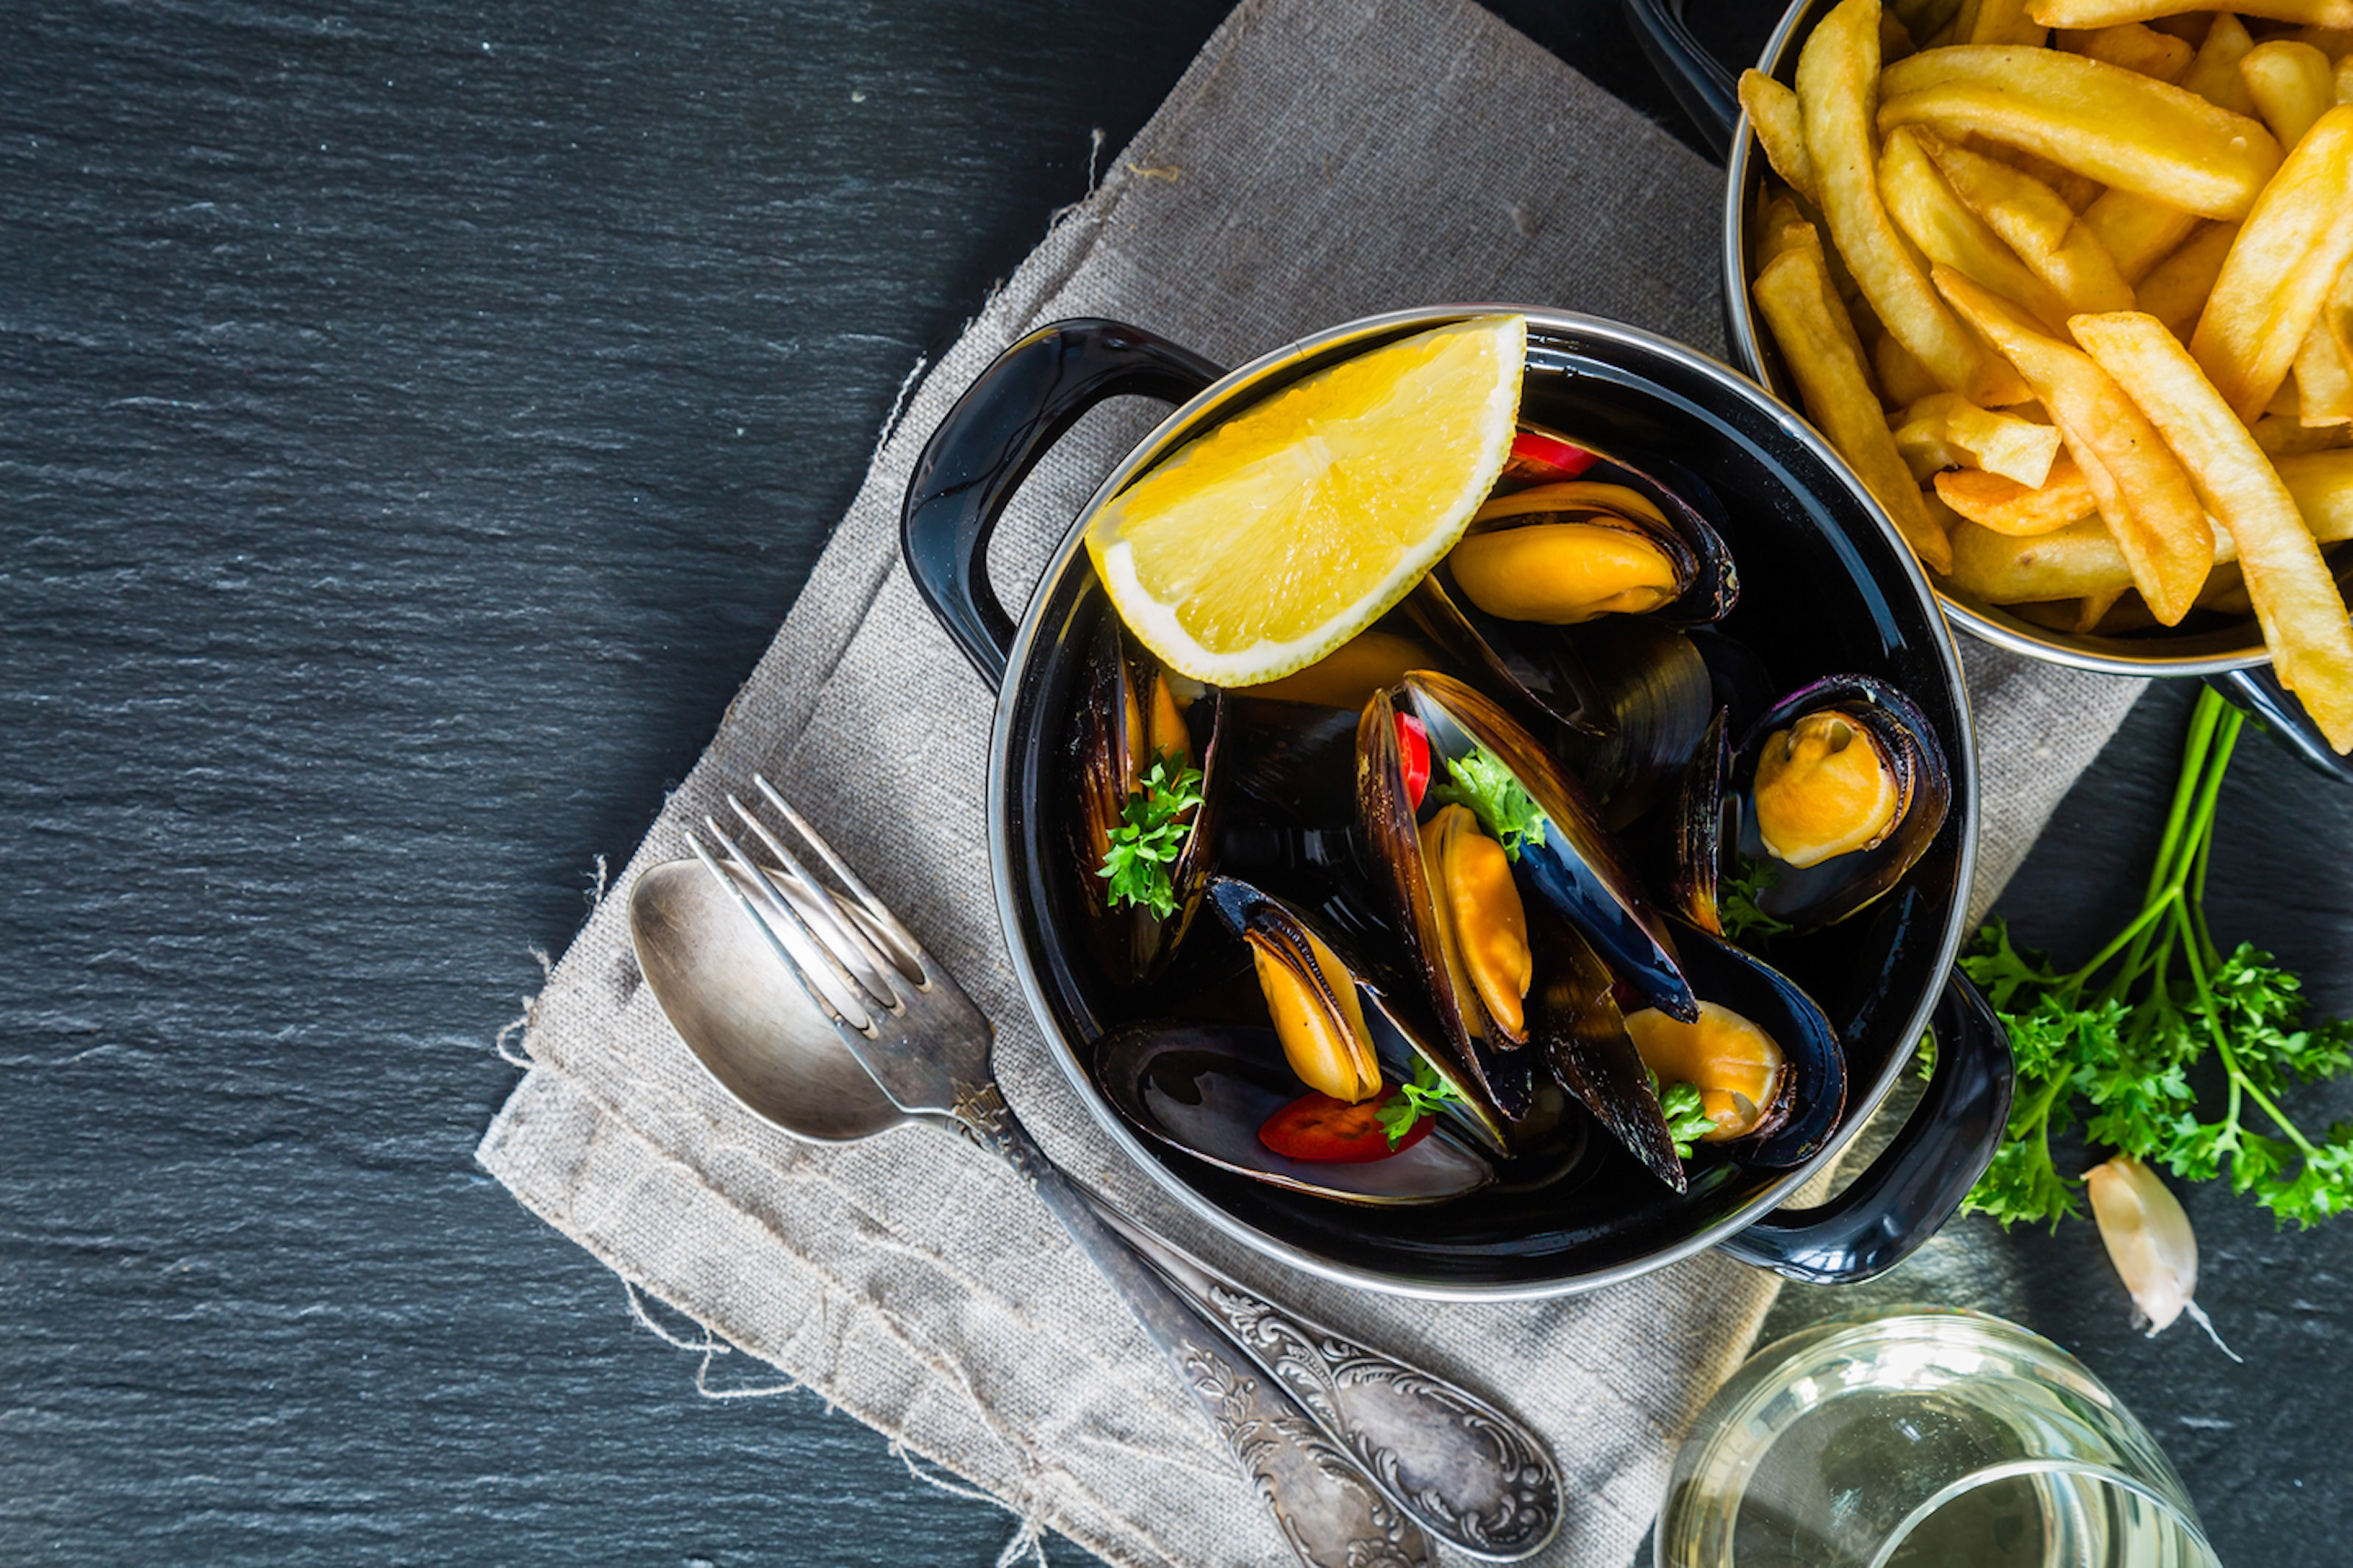 Moules frites inkl. dryck